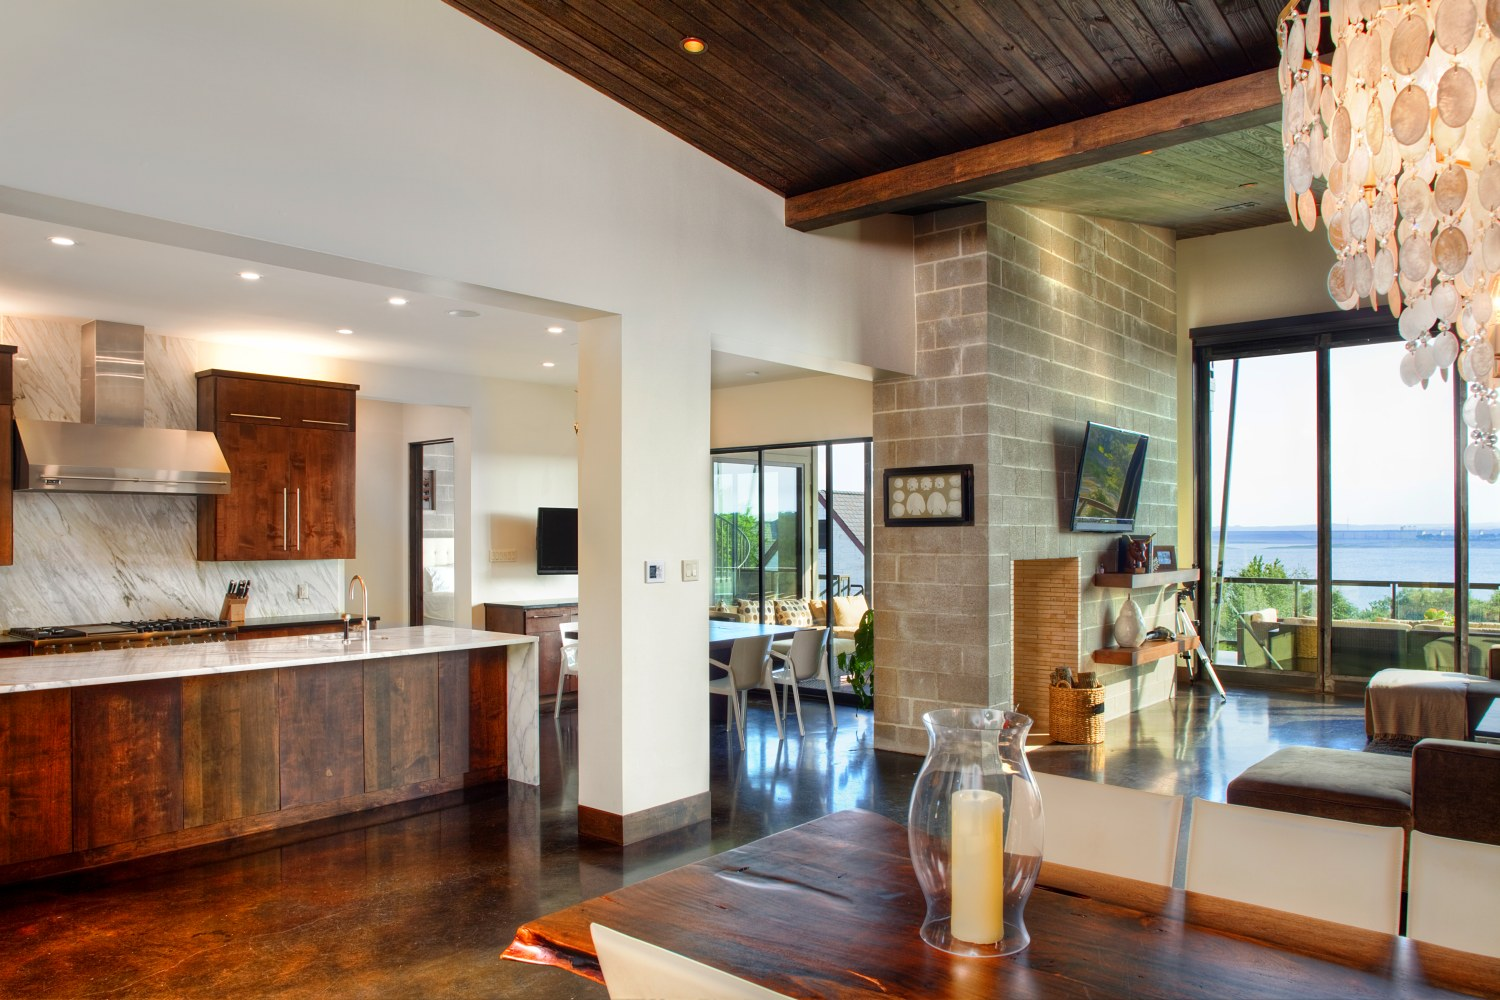 Architecture Home Modern Industrial family